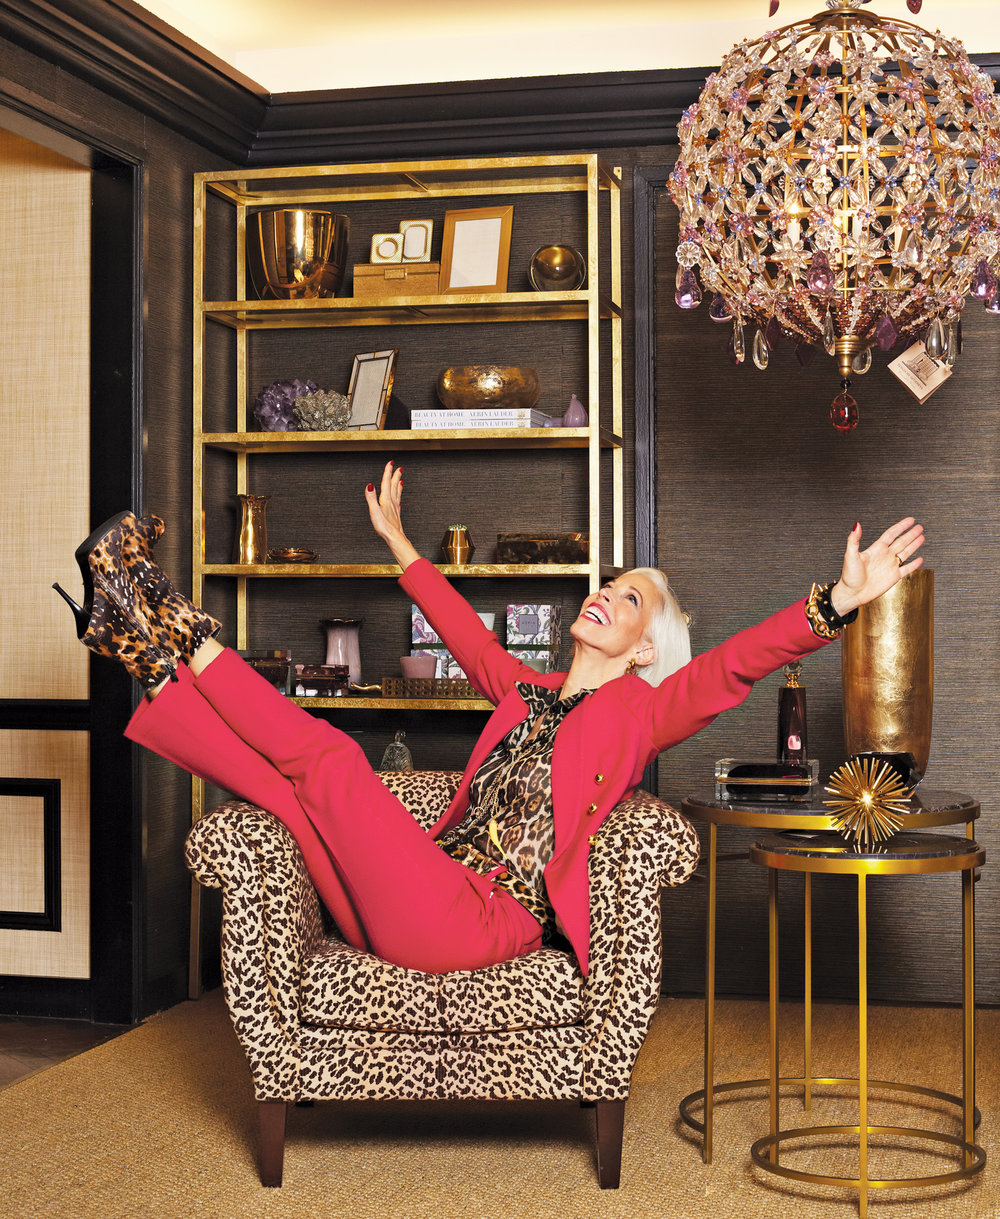 Linda Fargo, Fashion Director, Bergdorf Goodman USA Photo: Jerome Jakubiec, courtesy of Rizzoli USA